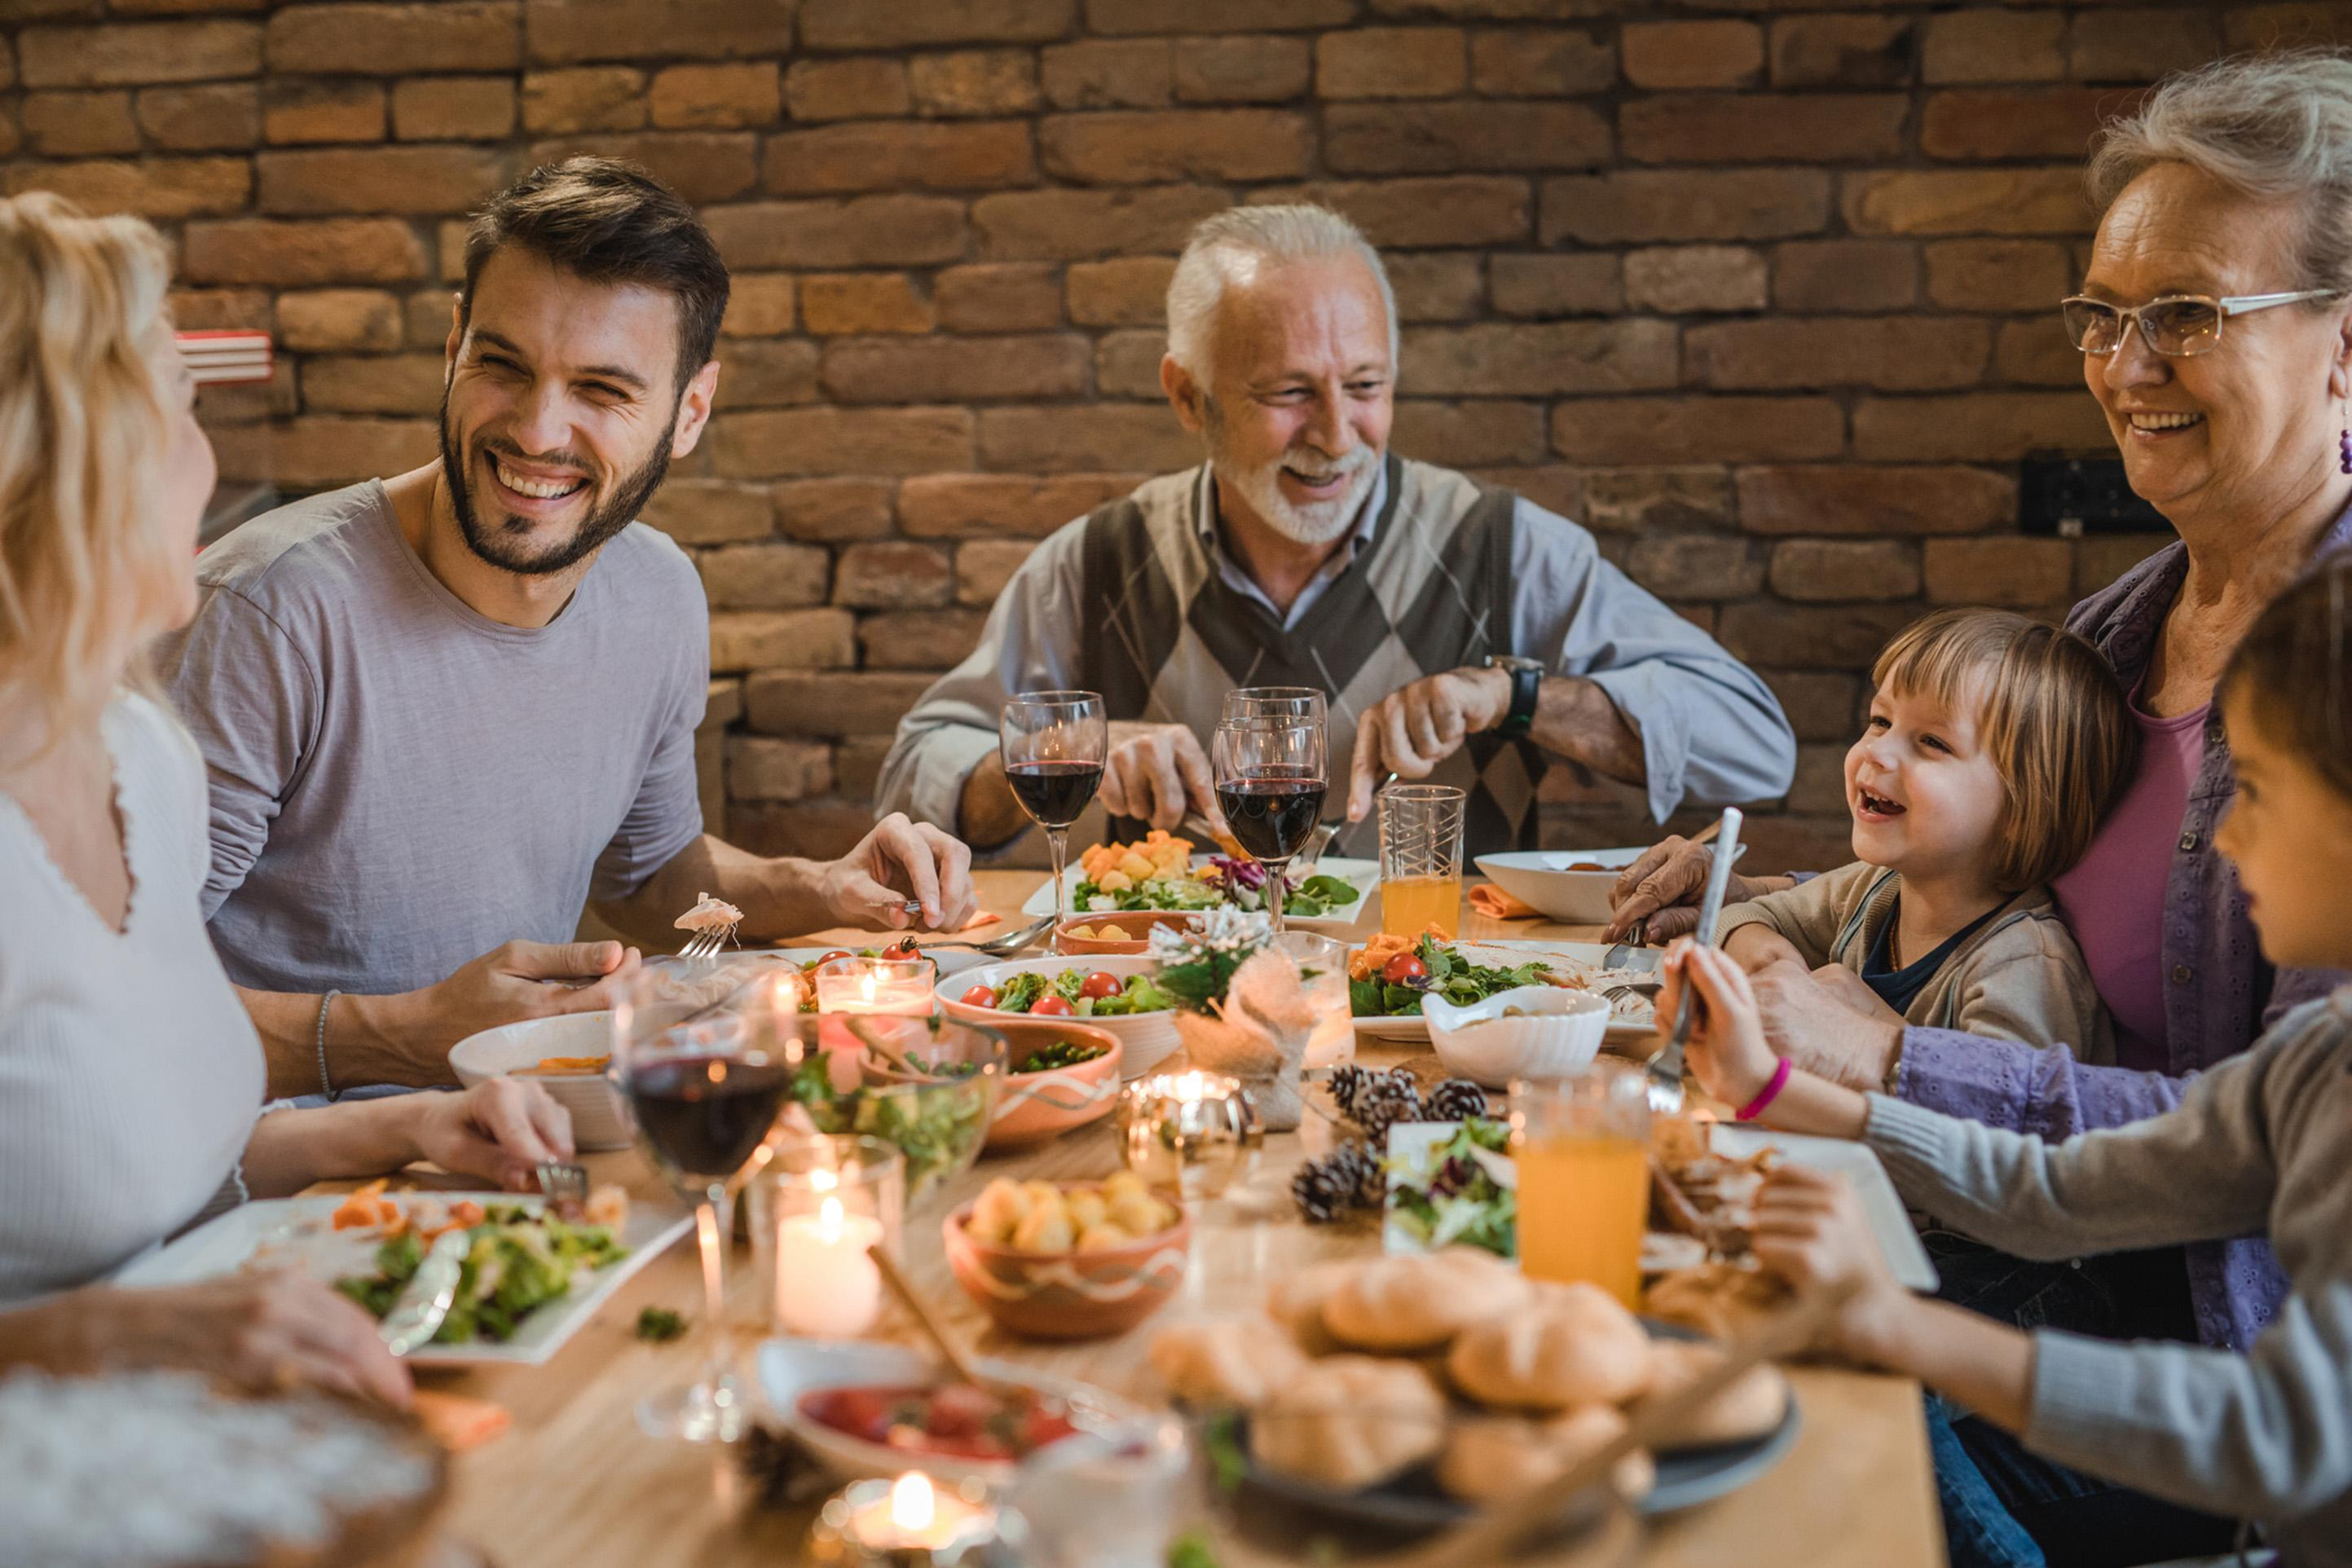 Regularly eating together as a family can improve your ...